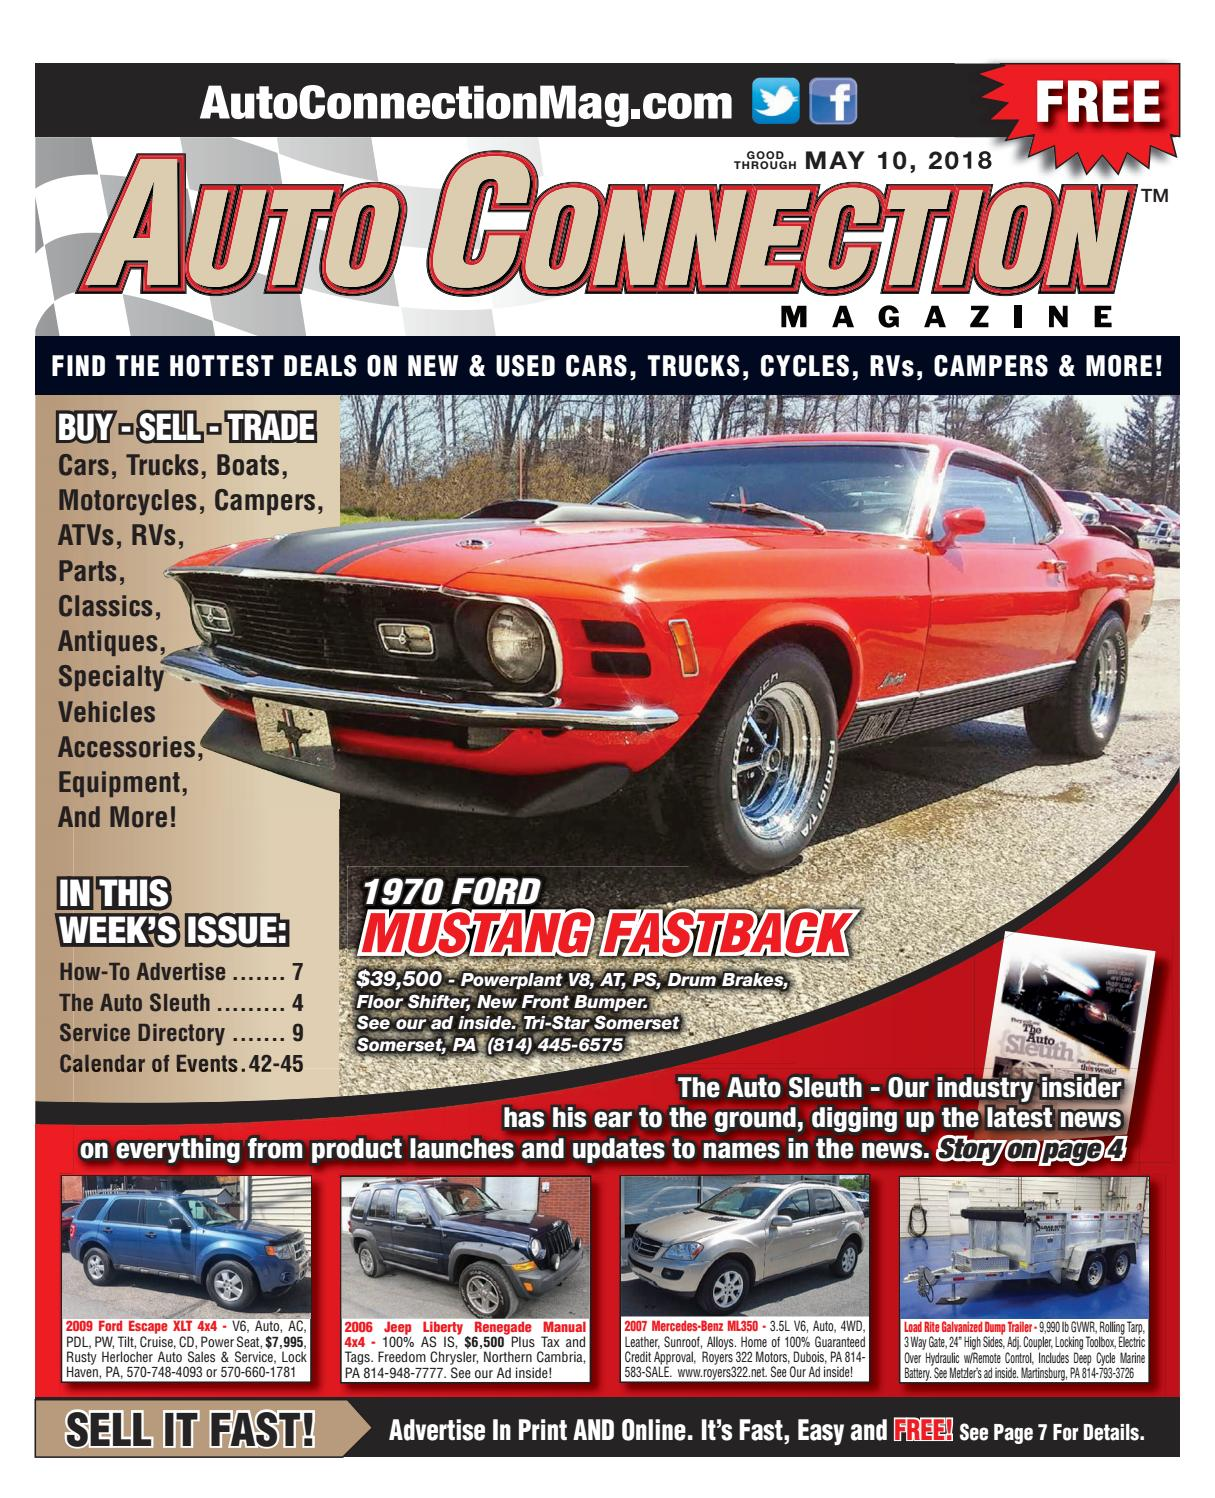 05-10-18 Auto Connection Magazine by Auto Connection Magazine - issuu